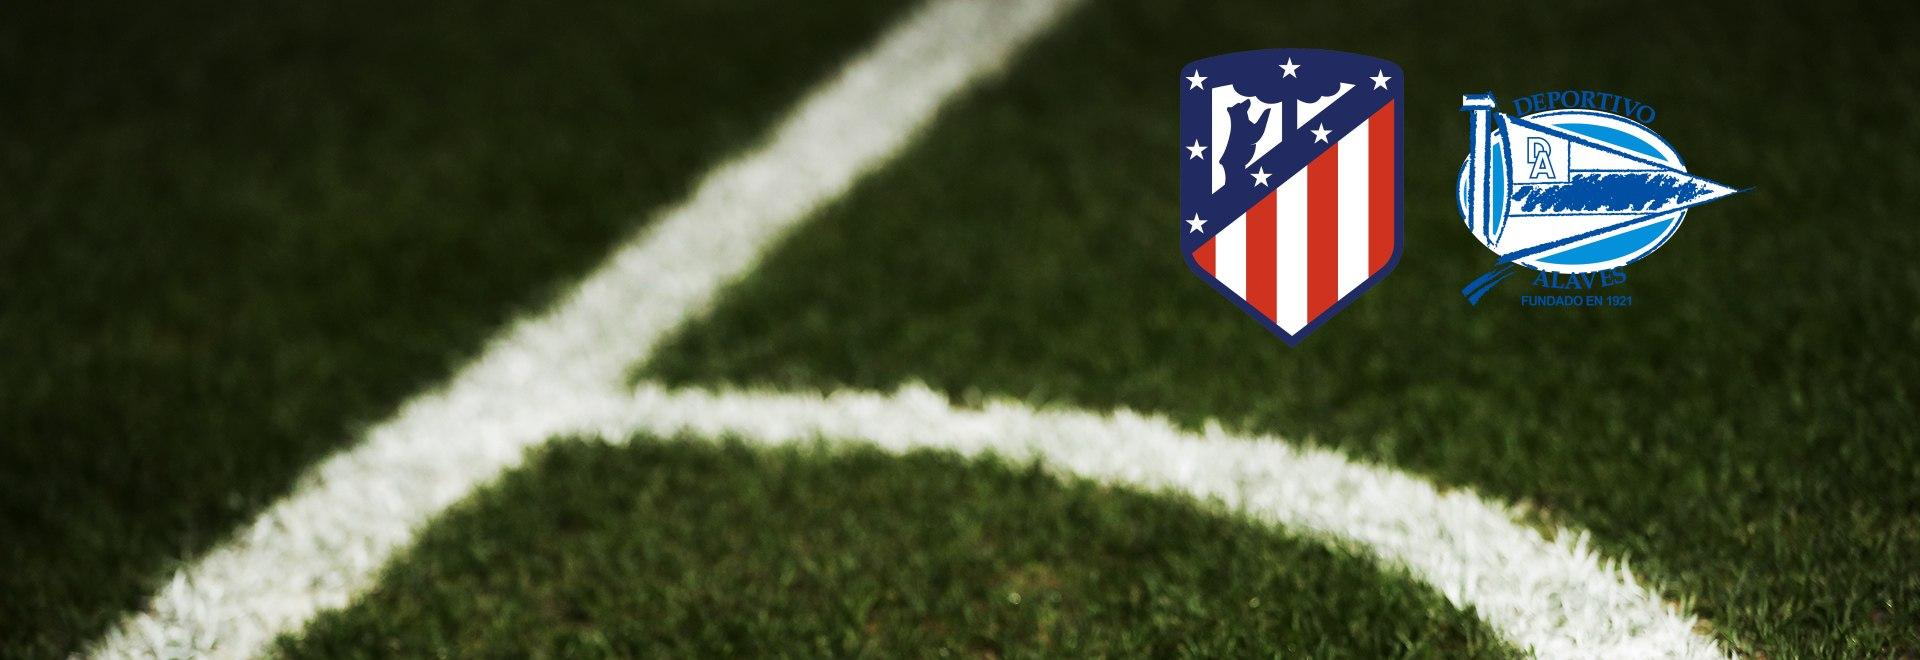 Atletico Madrid - Alaves. 28a g.